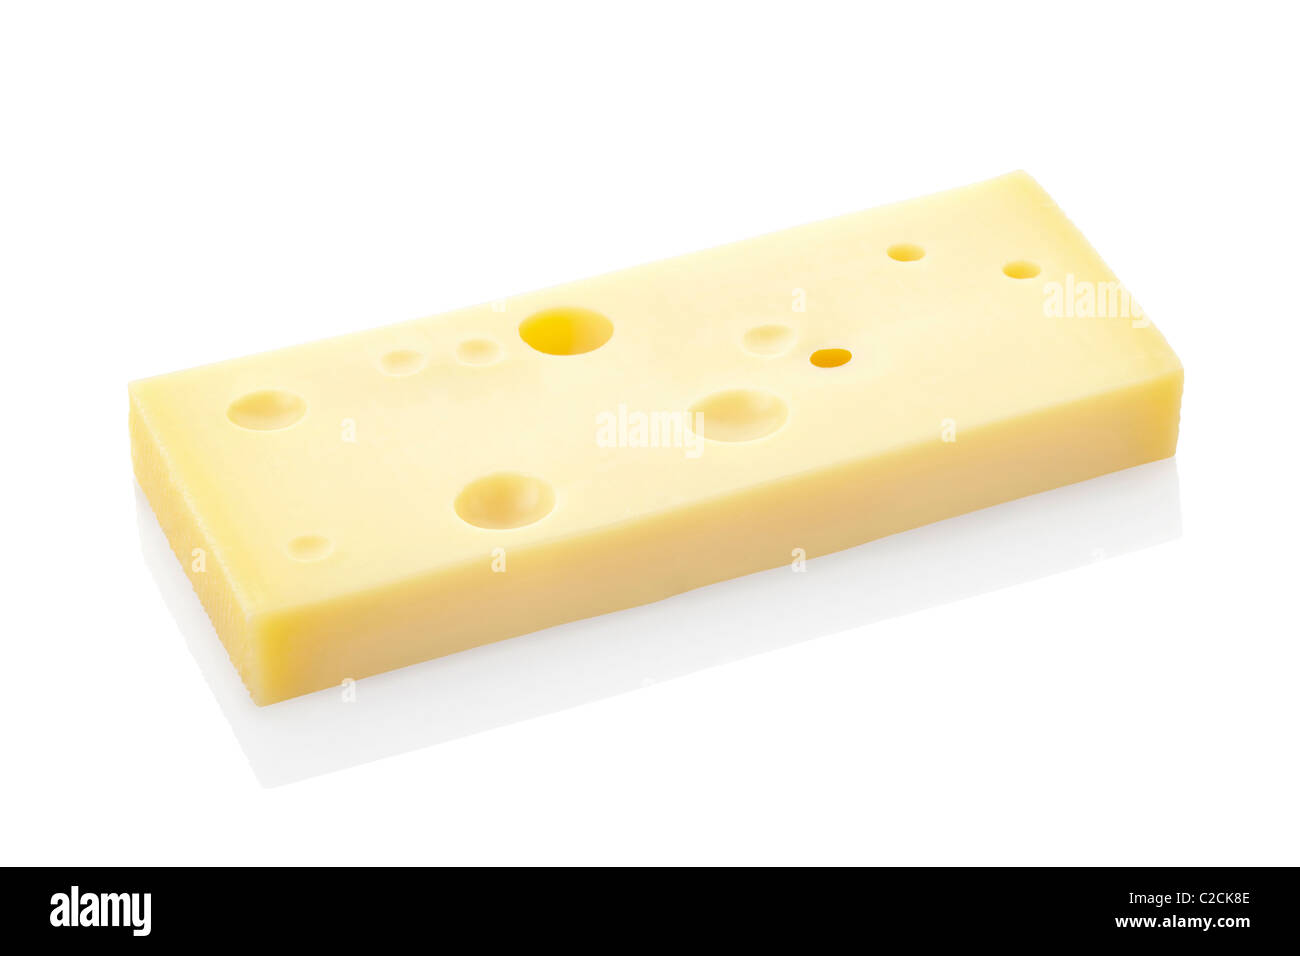 Swiss cheese slice isolated on white - Stock Image